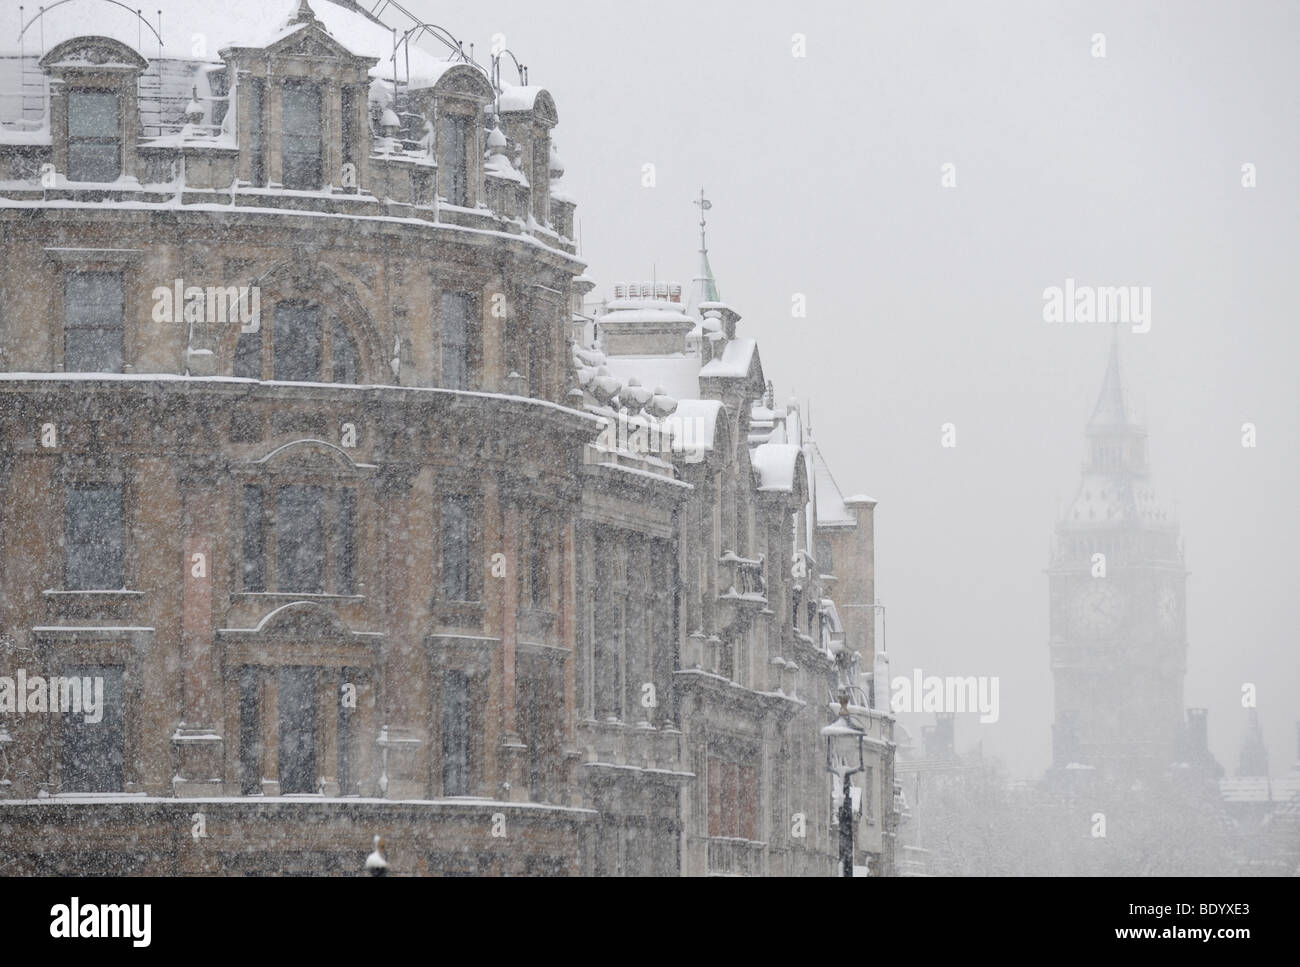 View from Trafalgar square down Whitehall to Houses of Parliament obscured by heavy snow. - Stock Image